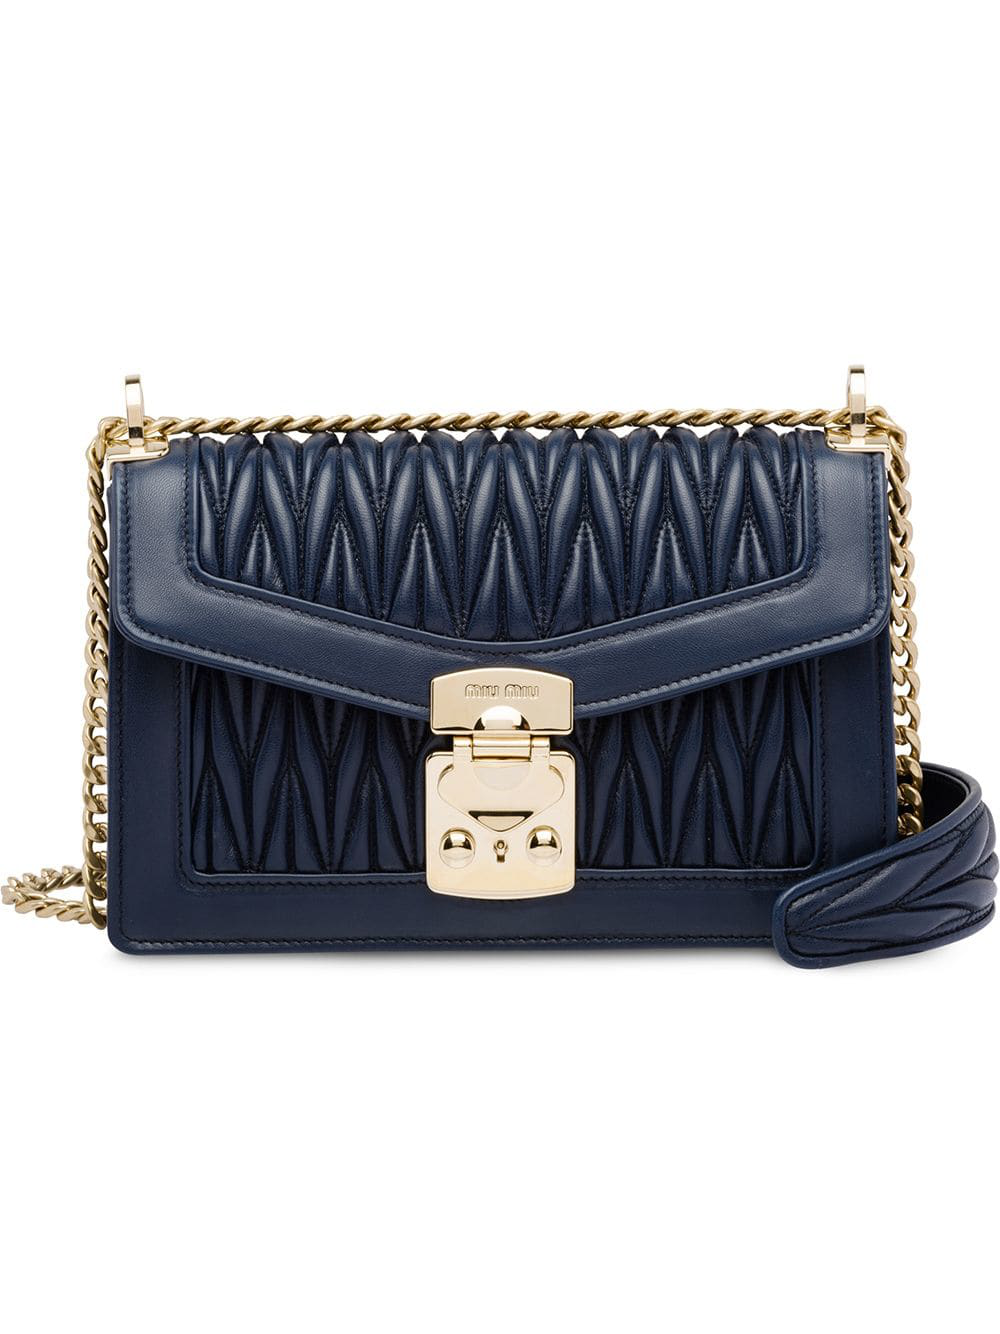 c537b7e1513 Miu Miu Miu Confidential Matelassé Leather Bag - Blue